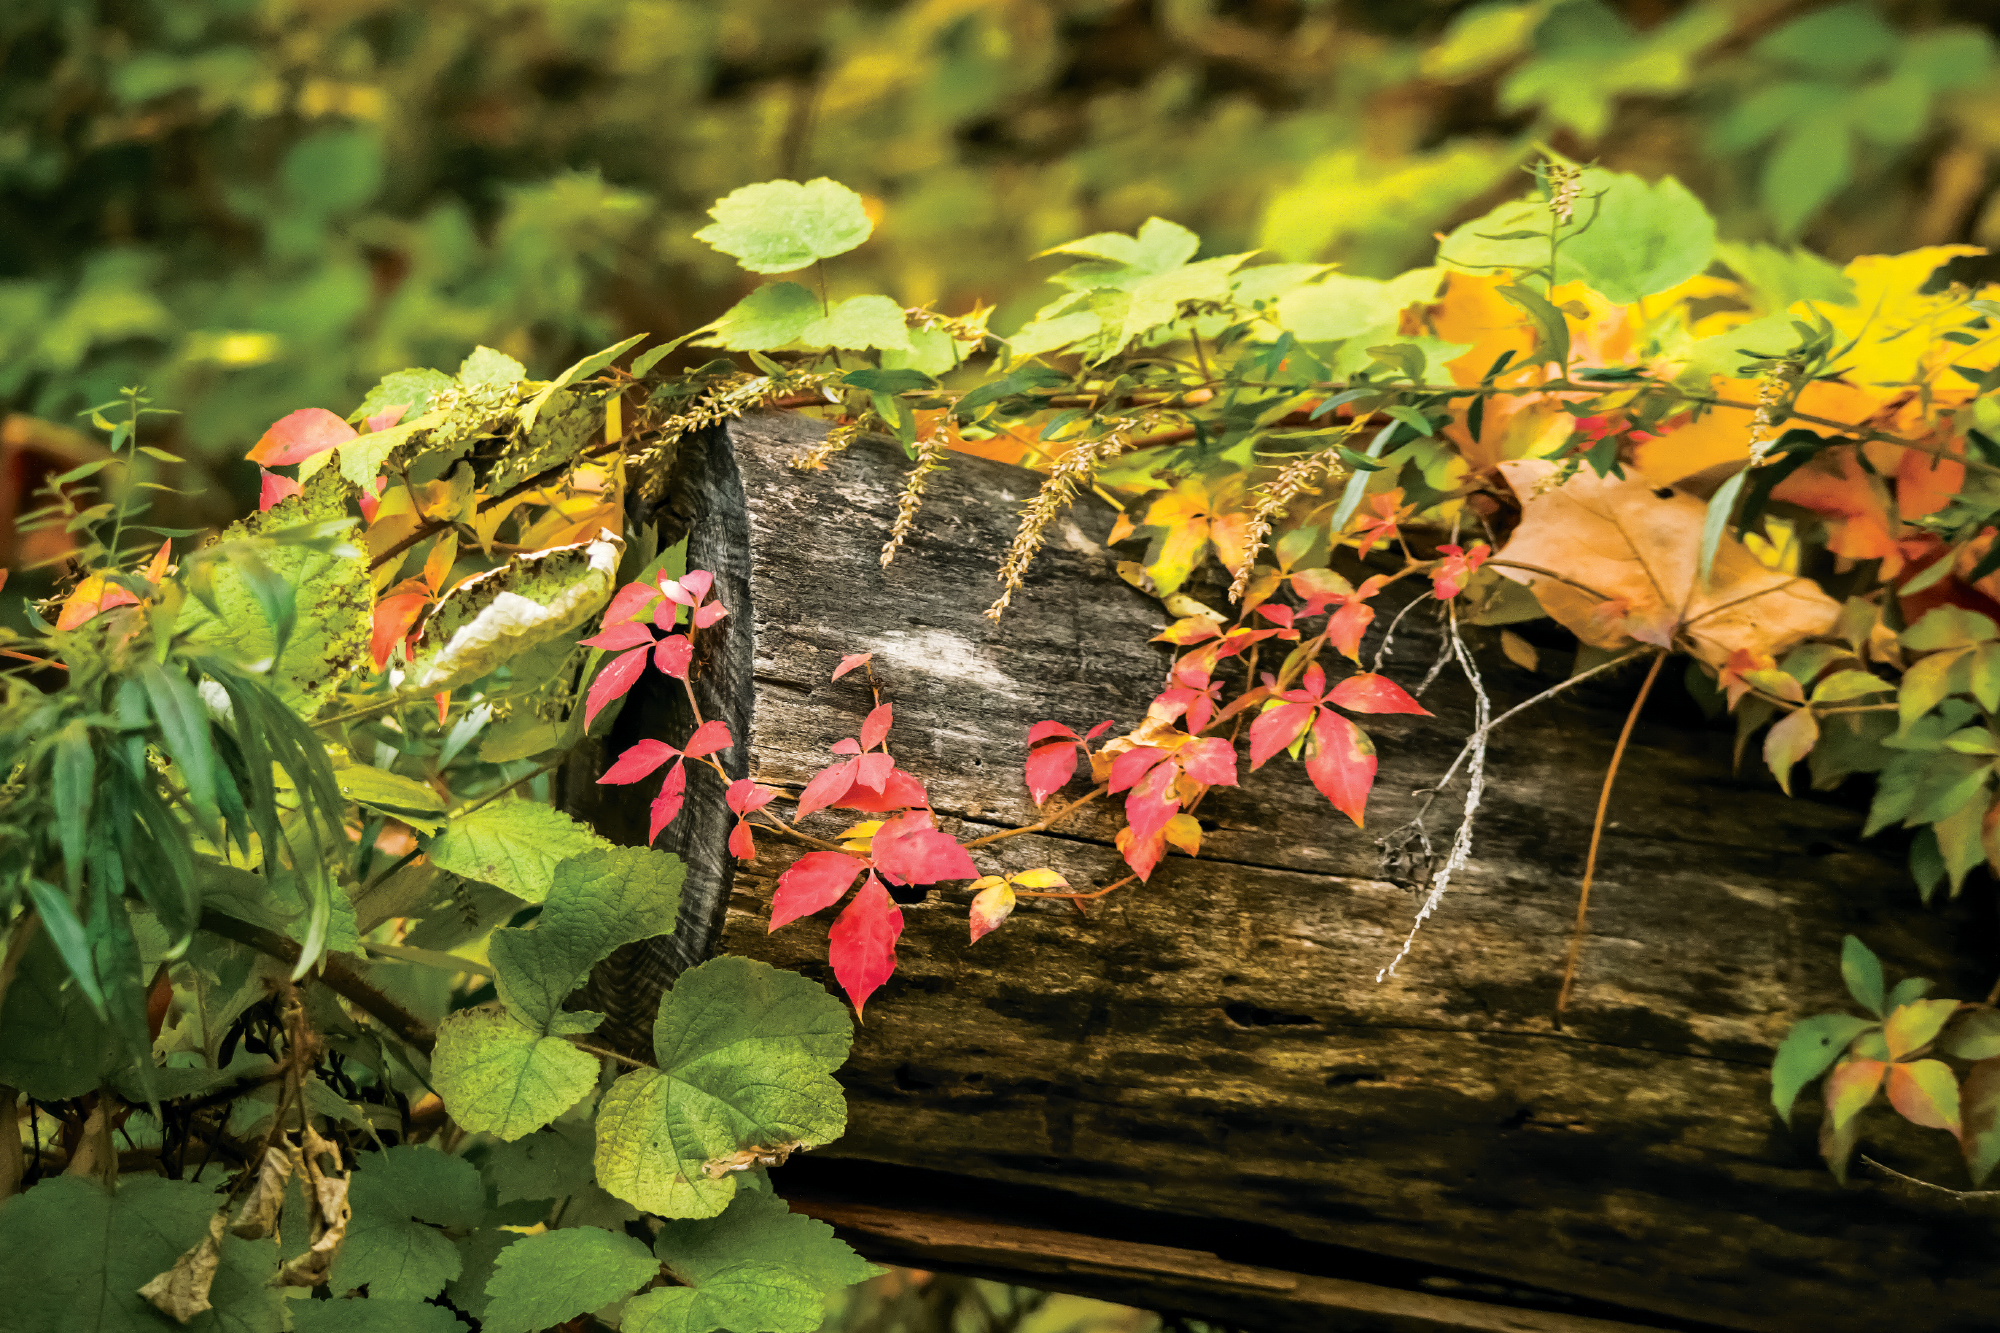 Photograph of a tree log covered in beautiful vines and leaves changing colors from fall. Taken in upstate New York.